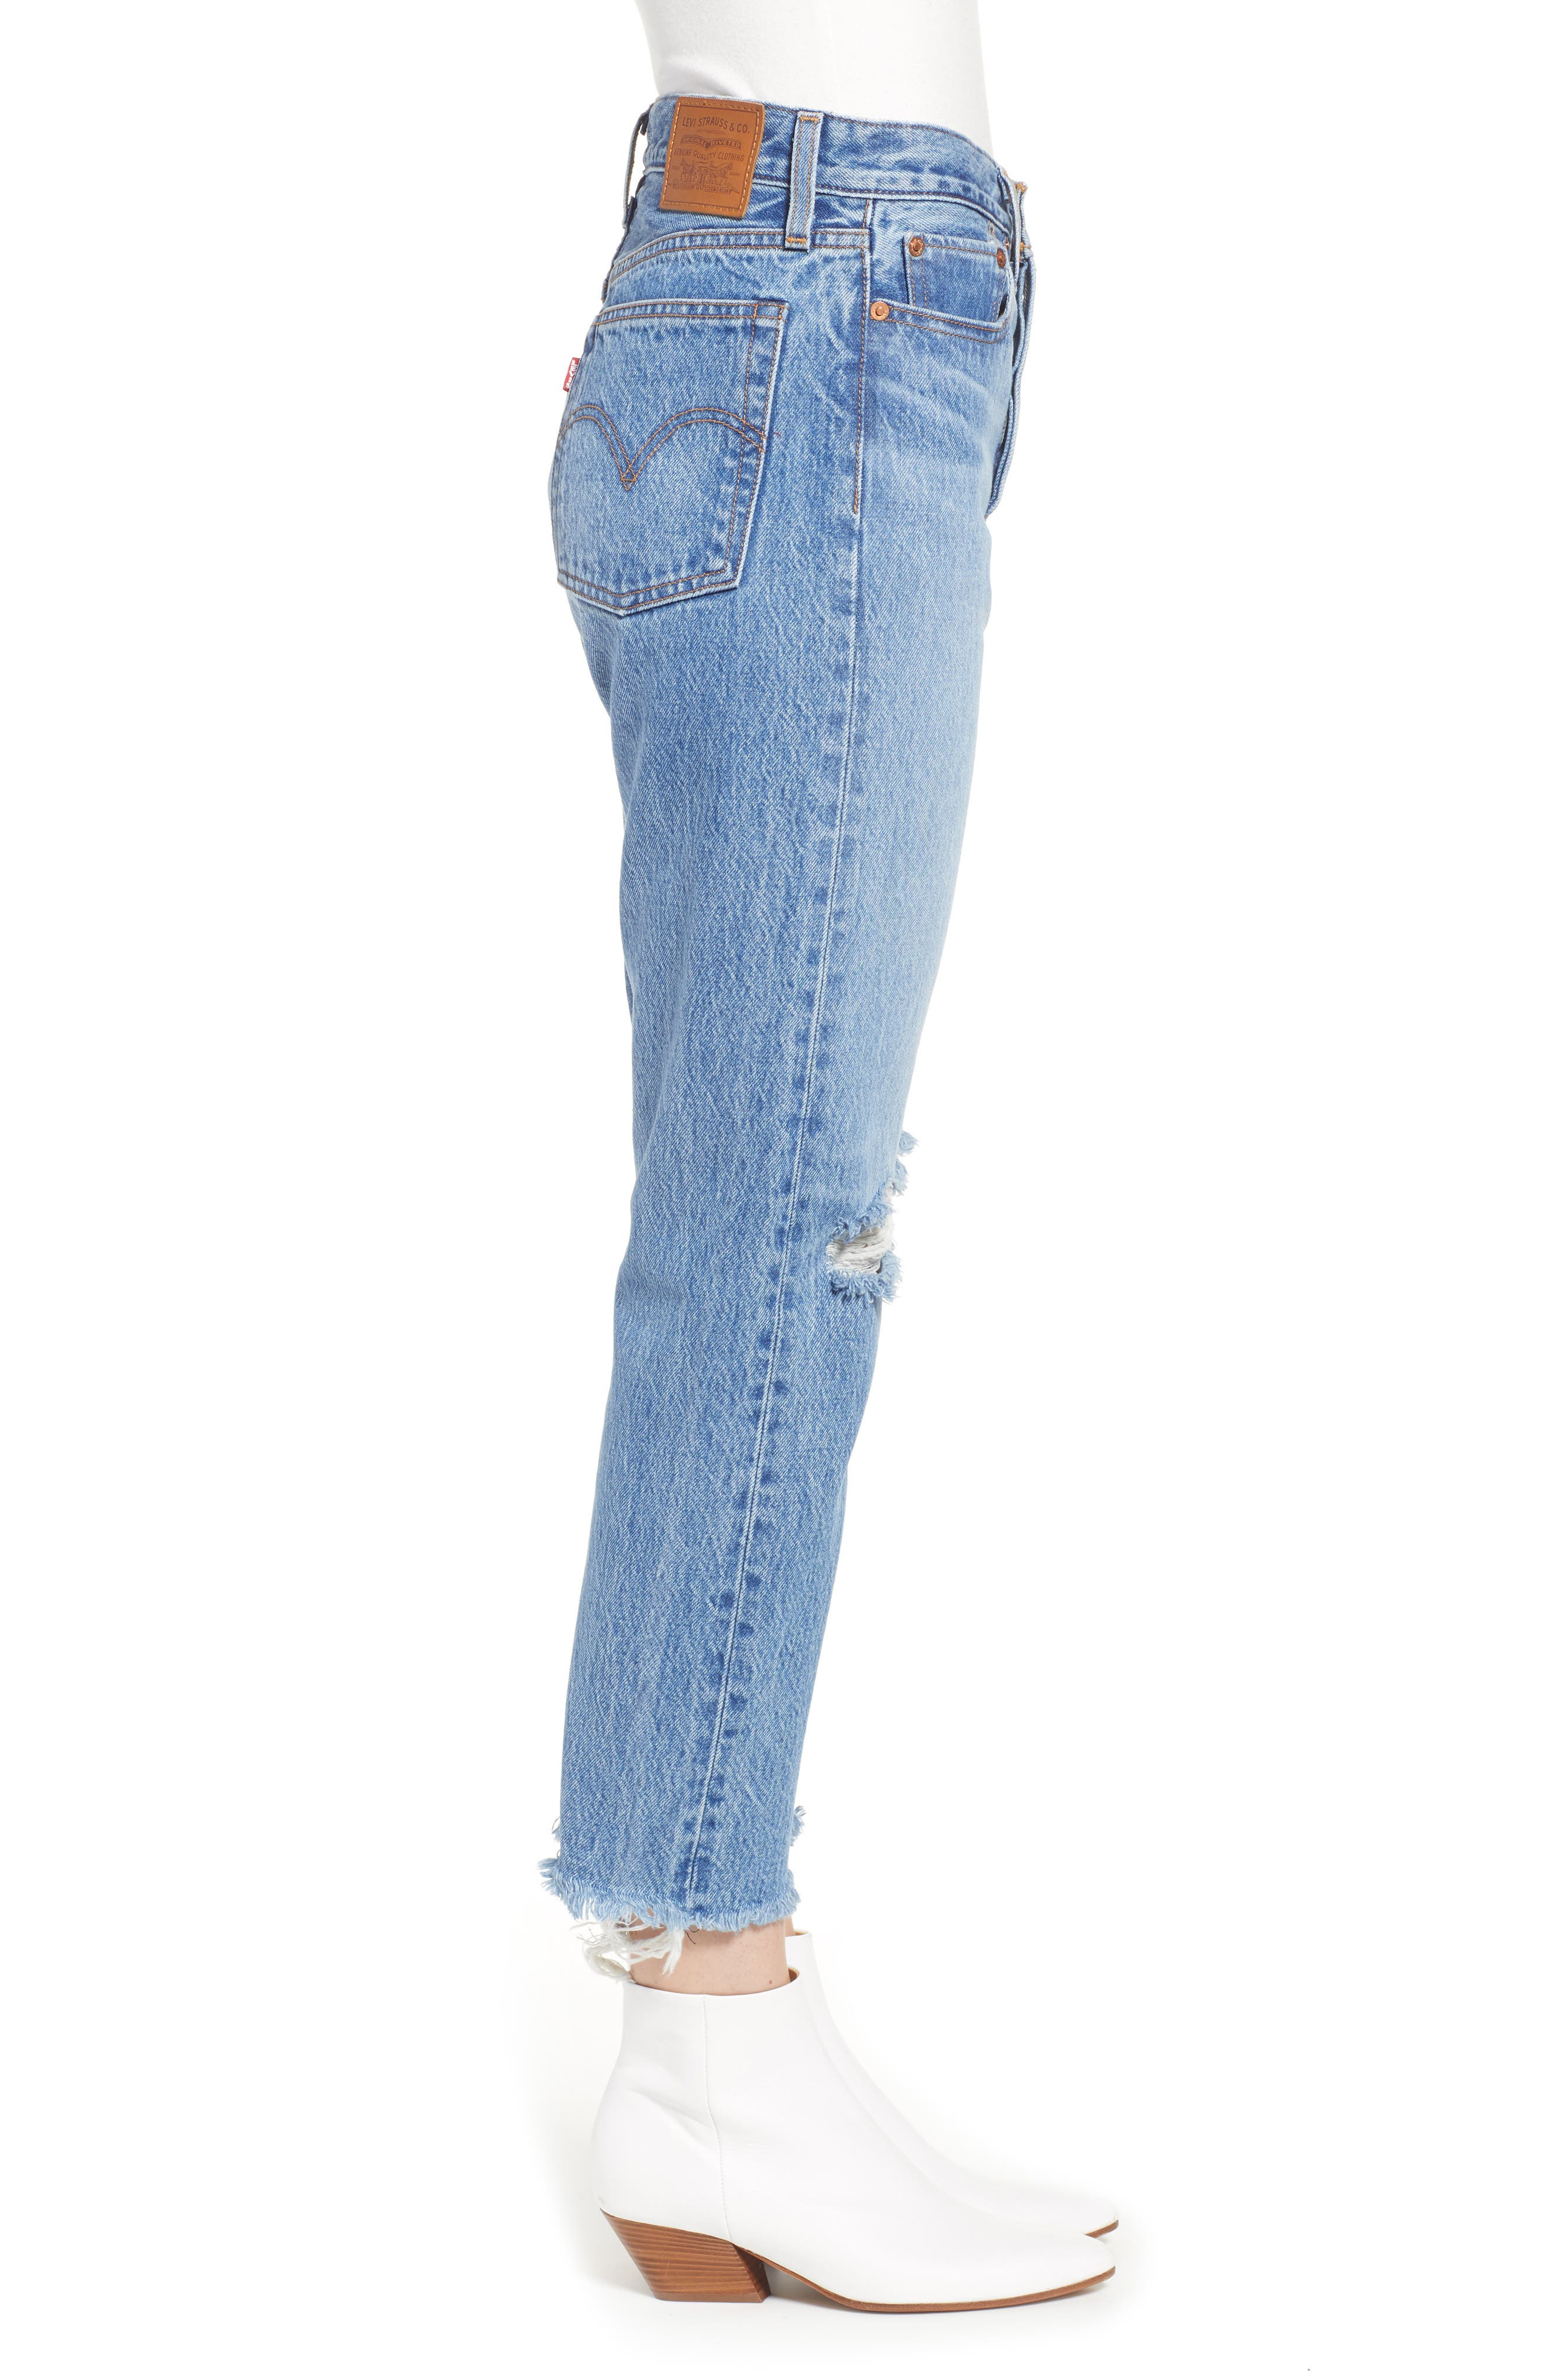 LEVI'S<SUP>®</SUP>, Wedgie High Waist Ripped Crop Straight Leg Jeans, Alternate thumbnail 4, color, UNCOVERED TRUTH